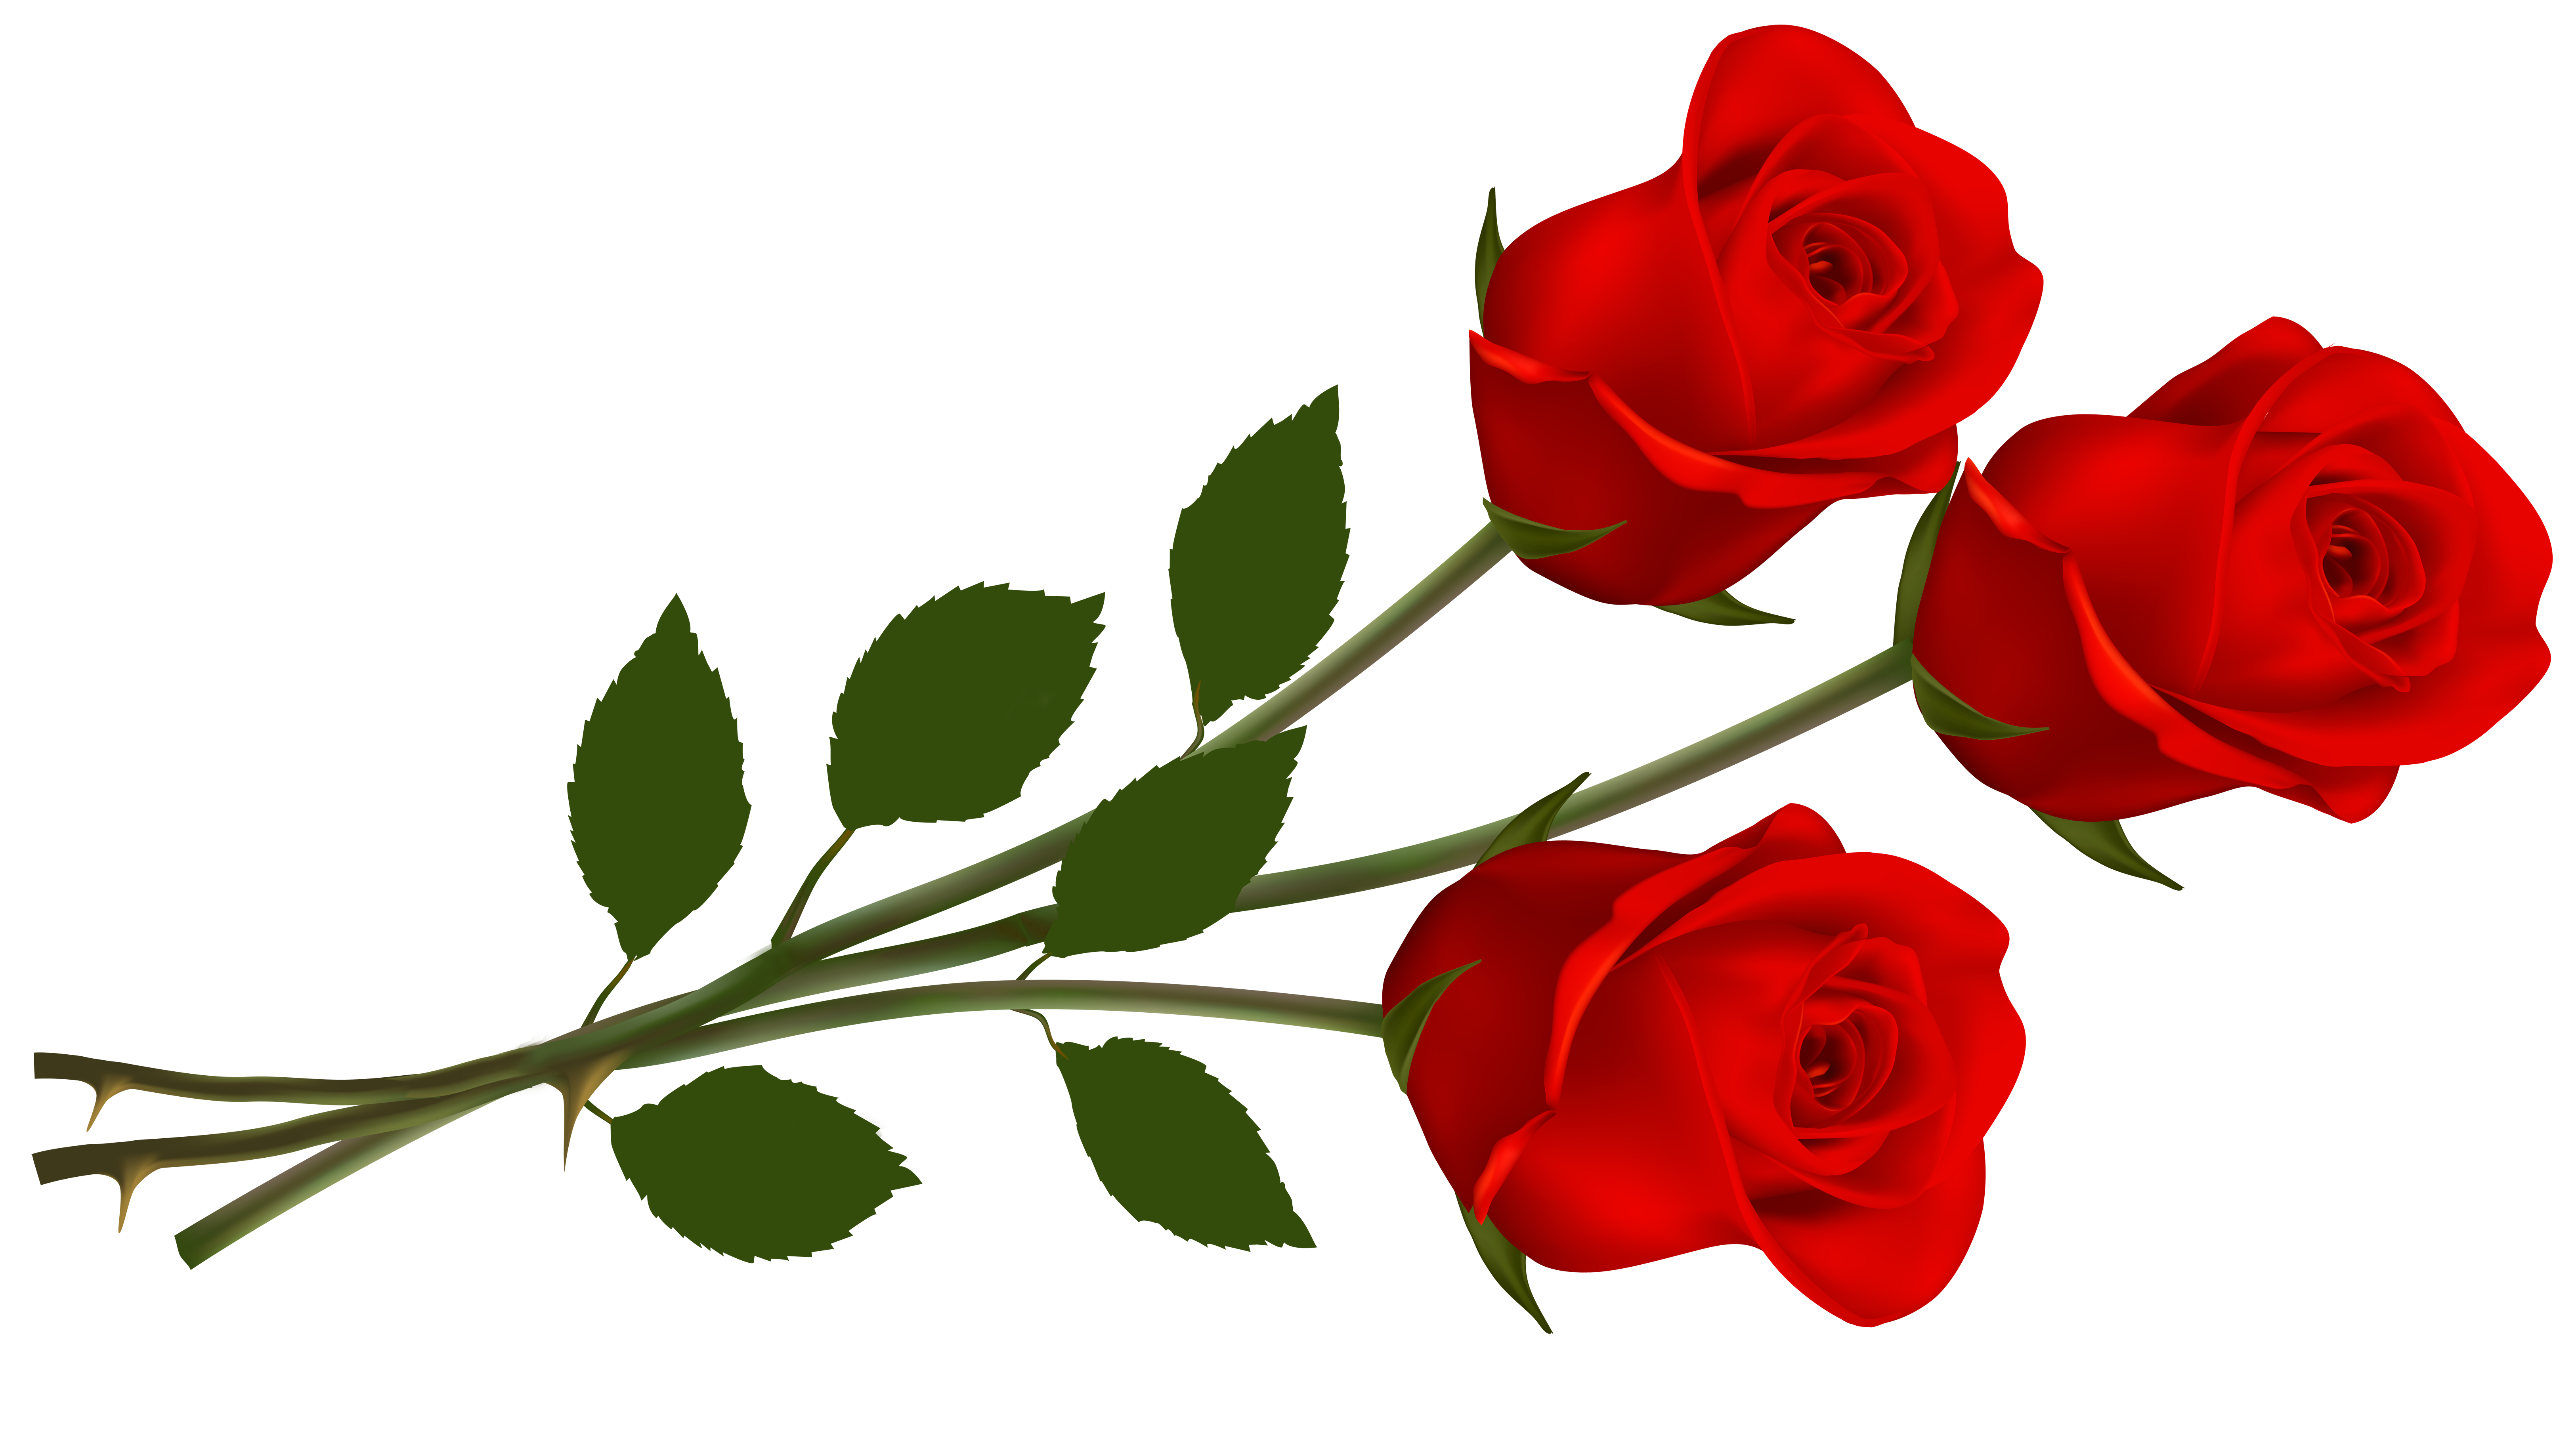 Single Red Rose Clipart - ClipartFest-Single red rose clipart - ClipartFest-16